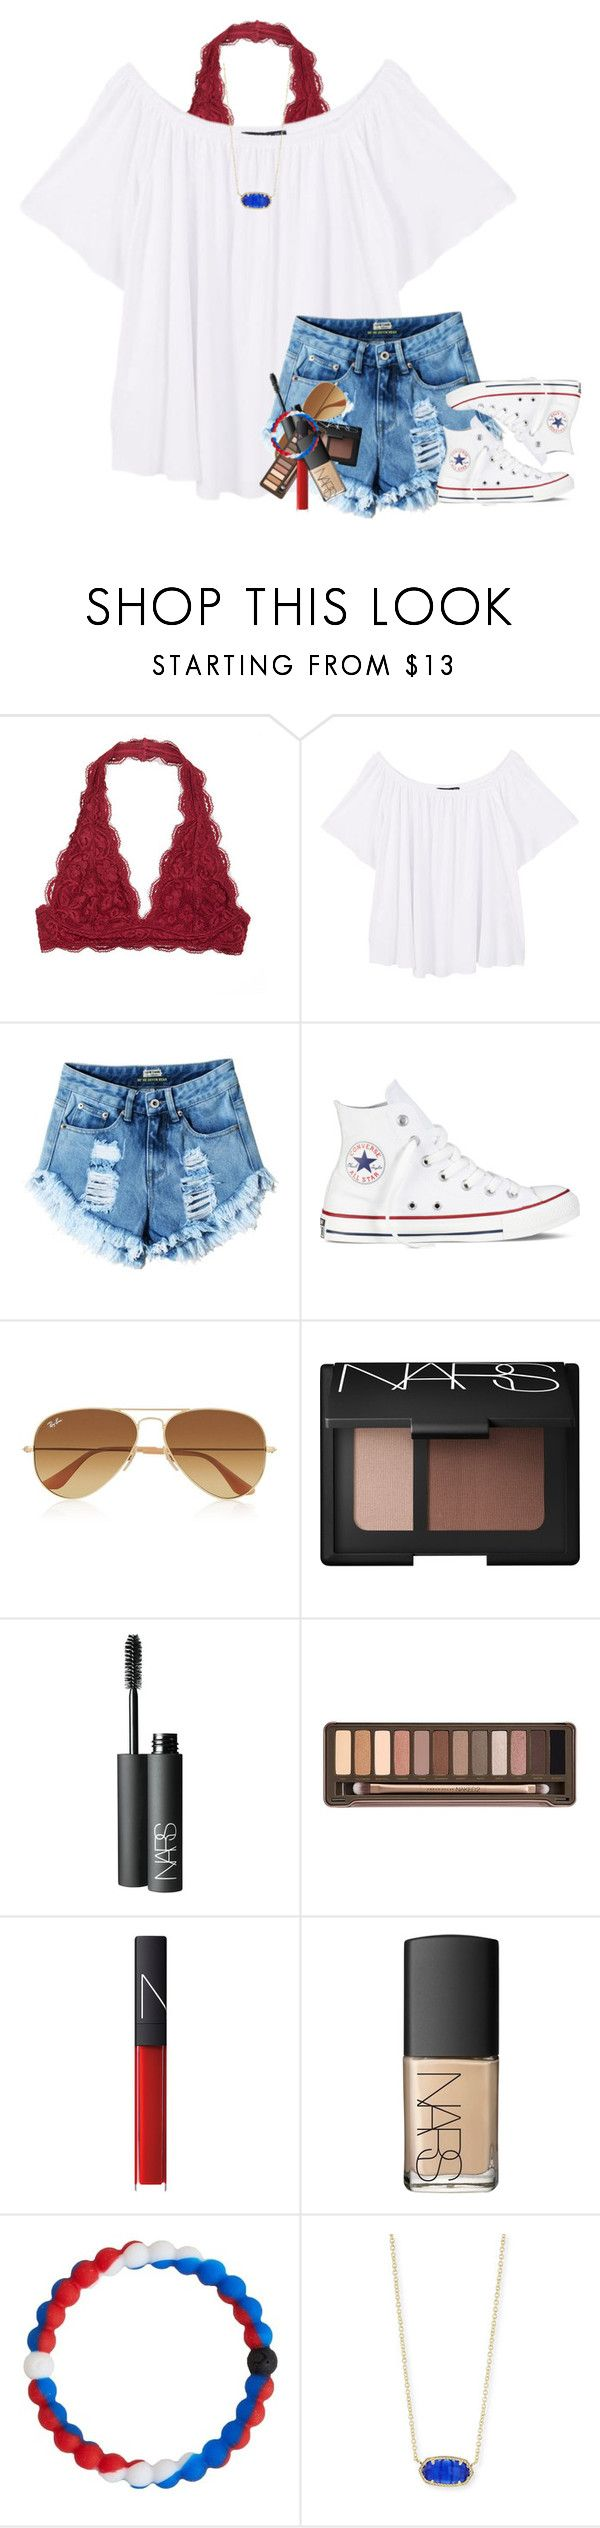 """""""Happy 4th!"""" by smiles-iv ❤ liked on Polyvore featuring MANGO, Converse, Ray-Ban, NARS Cosmetics, Urban Decay, Lokai and Kendra Scott"""